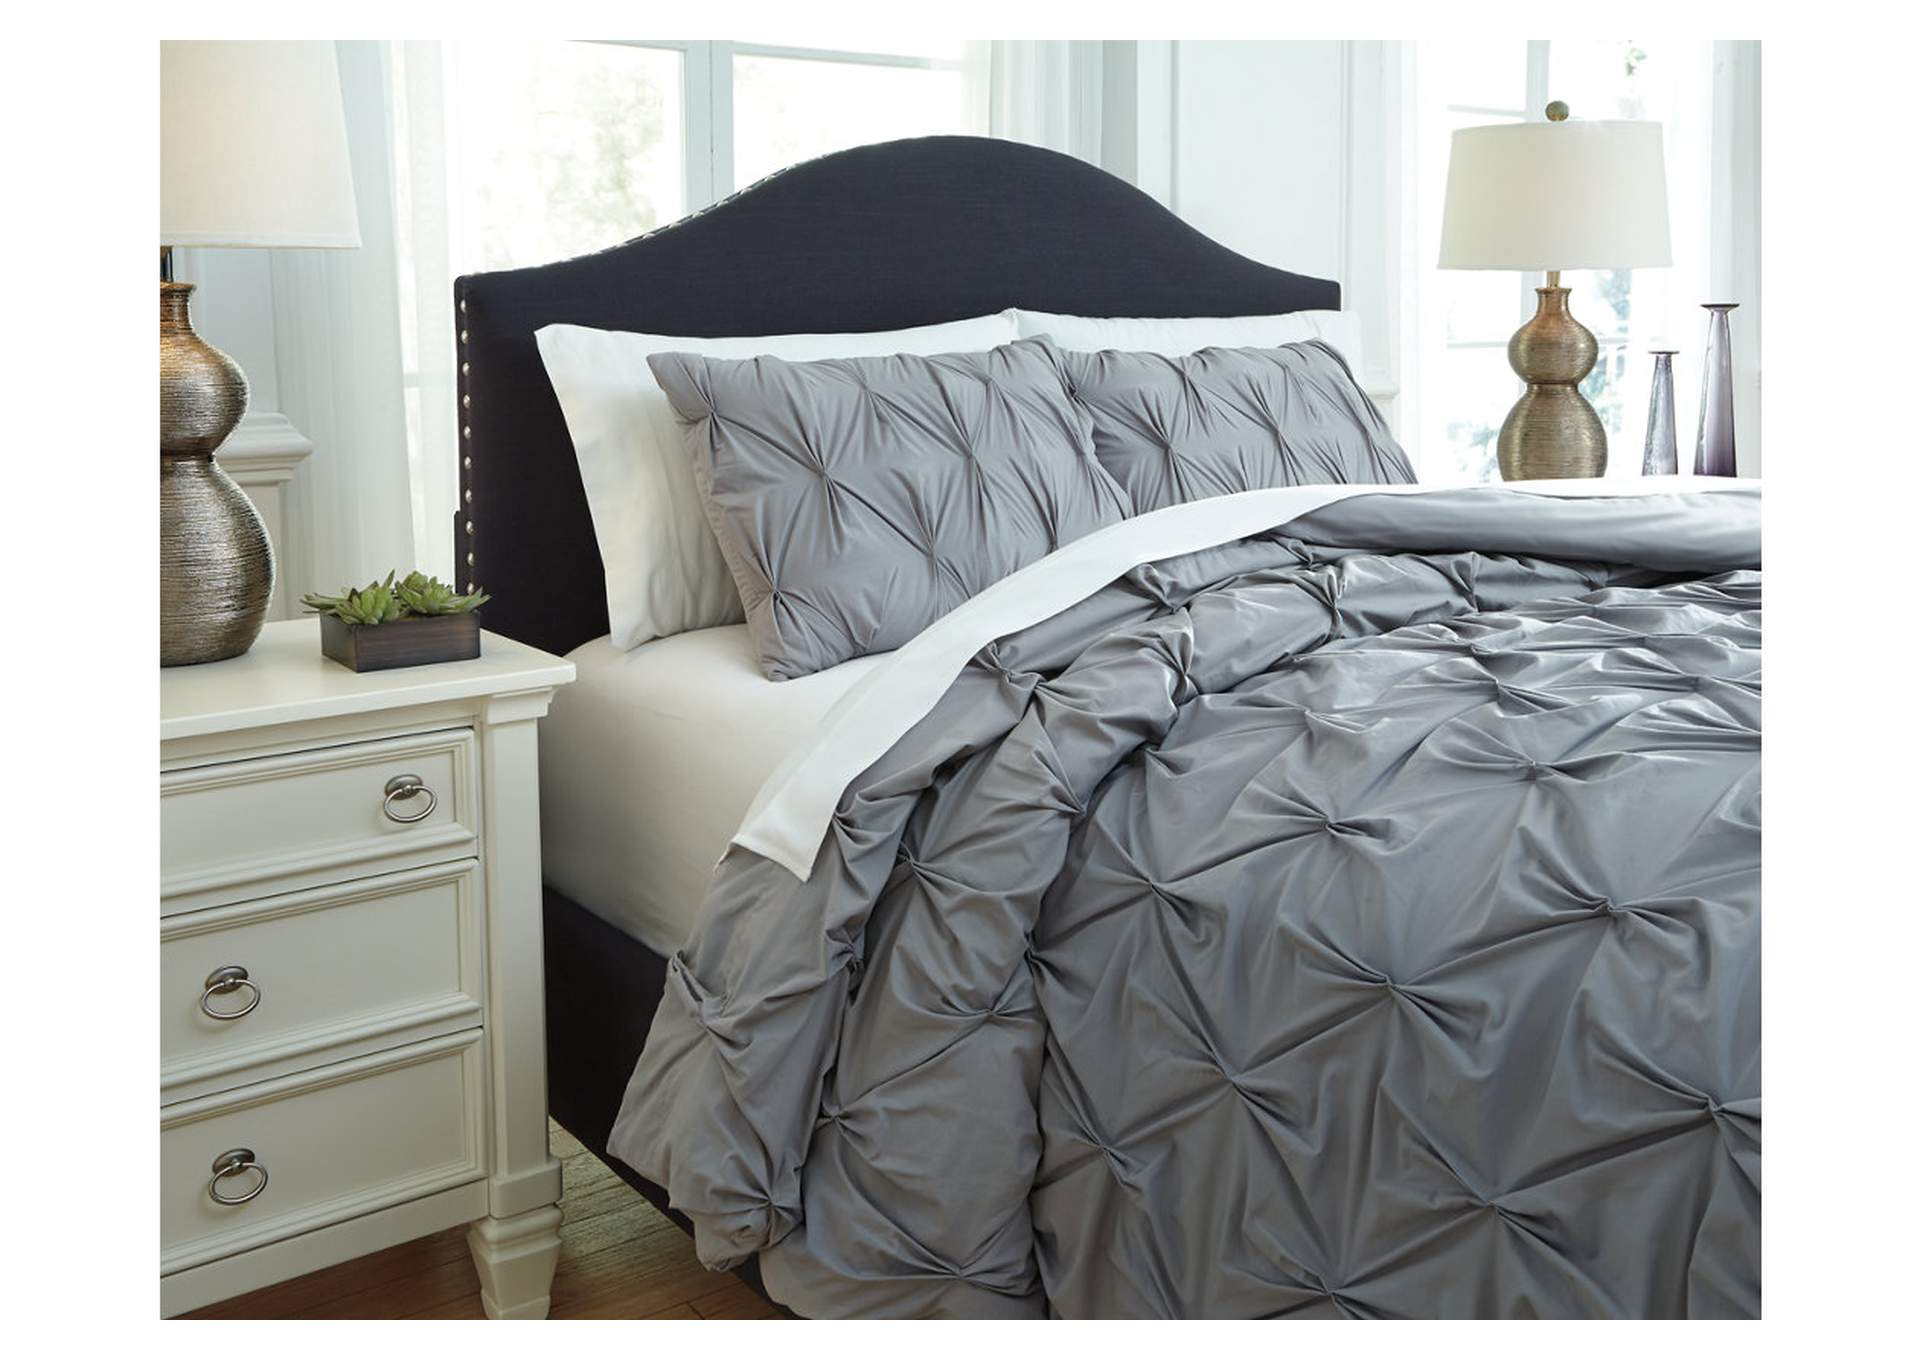 Rimy Gray Queen Comforter Set,Direct To Consumer Express